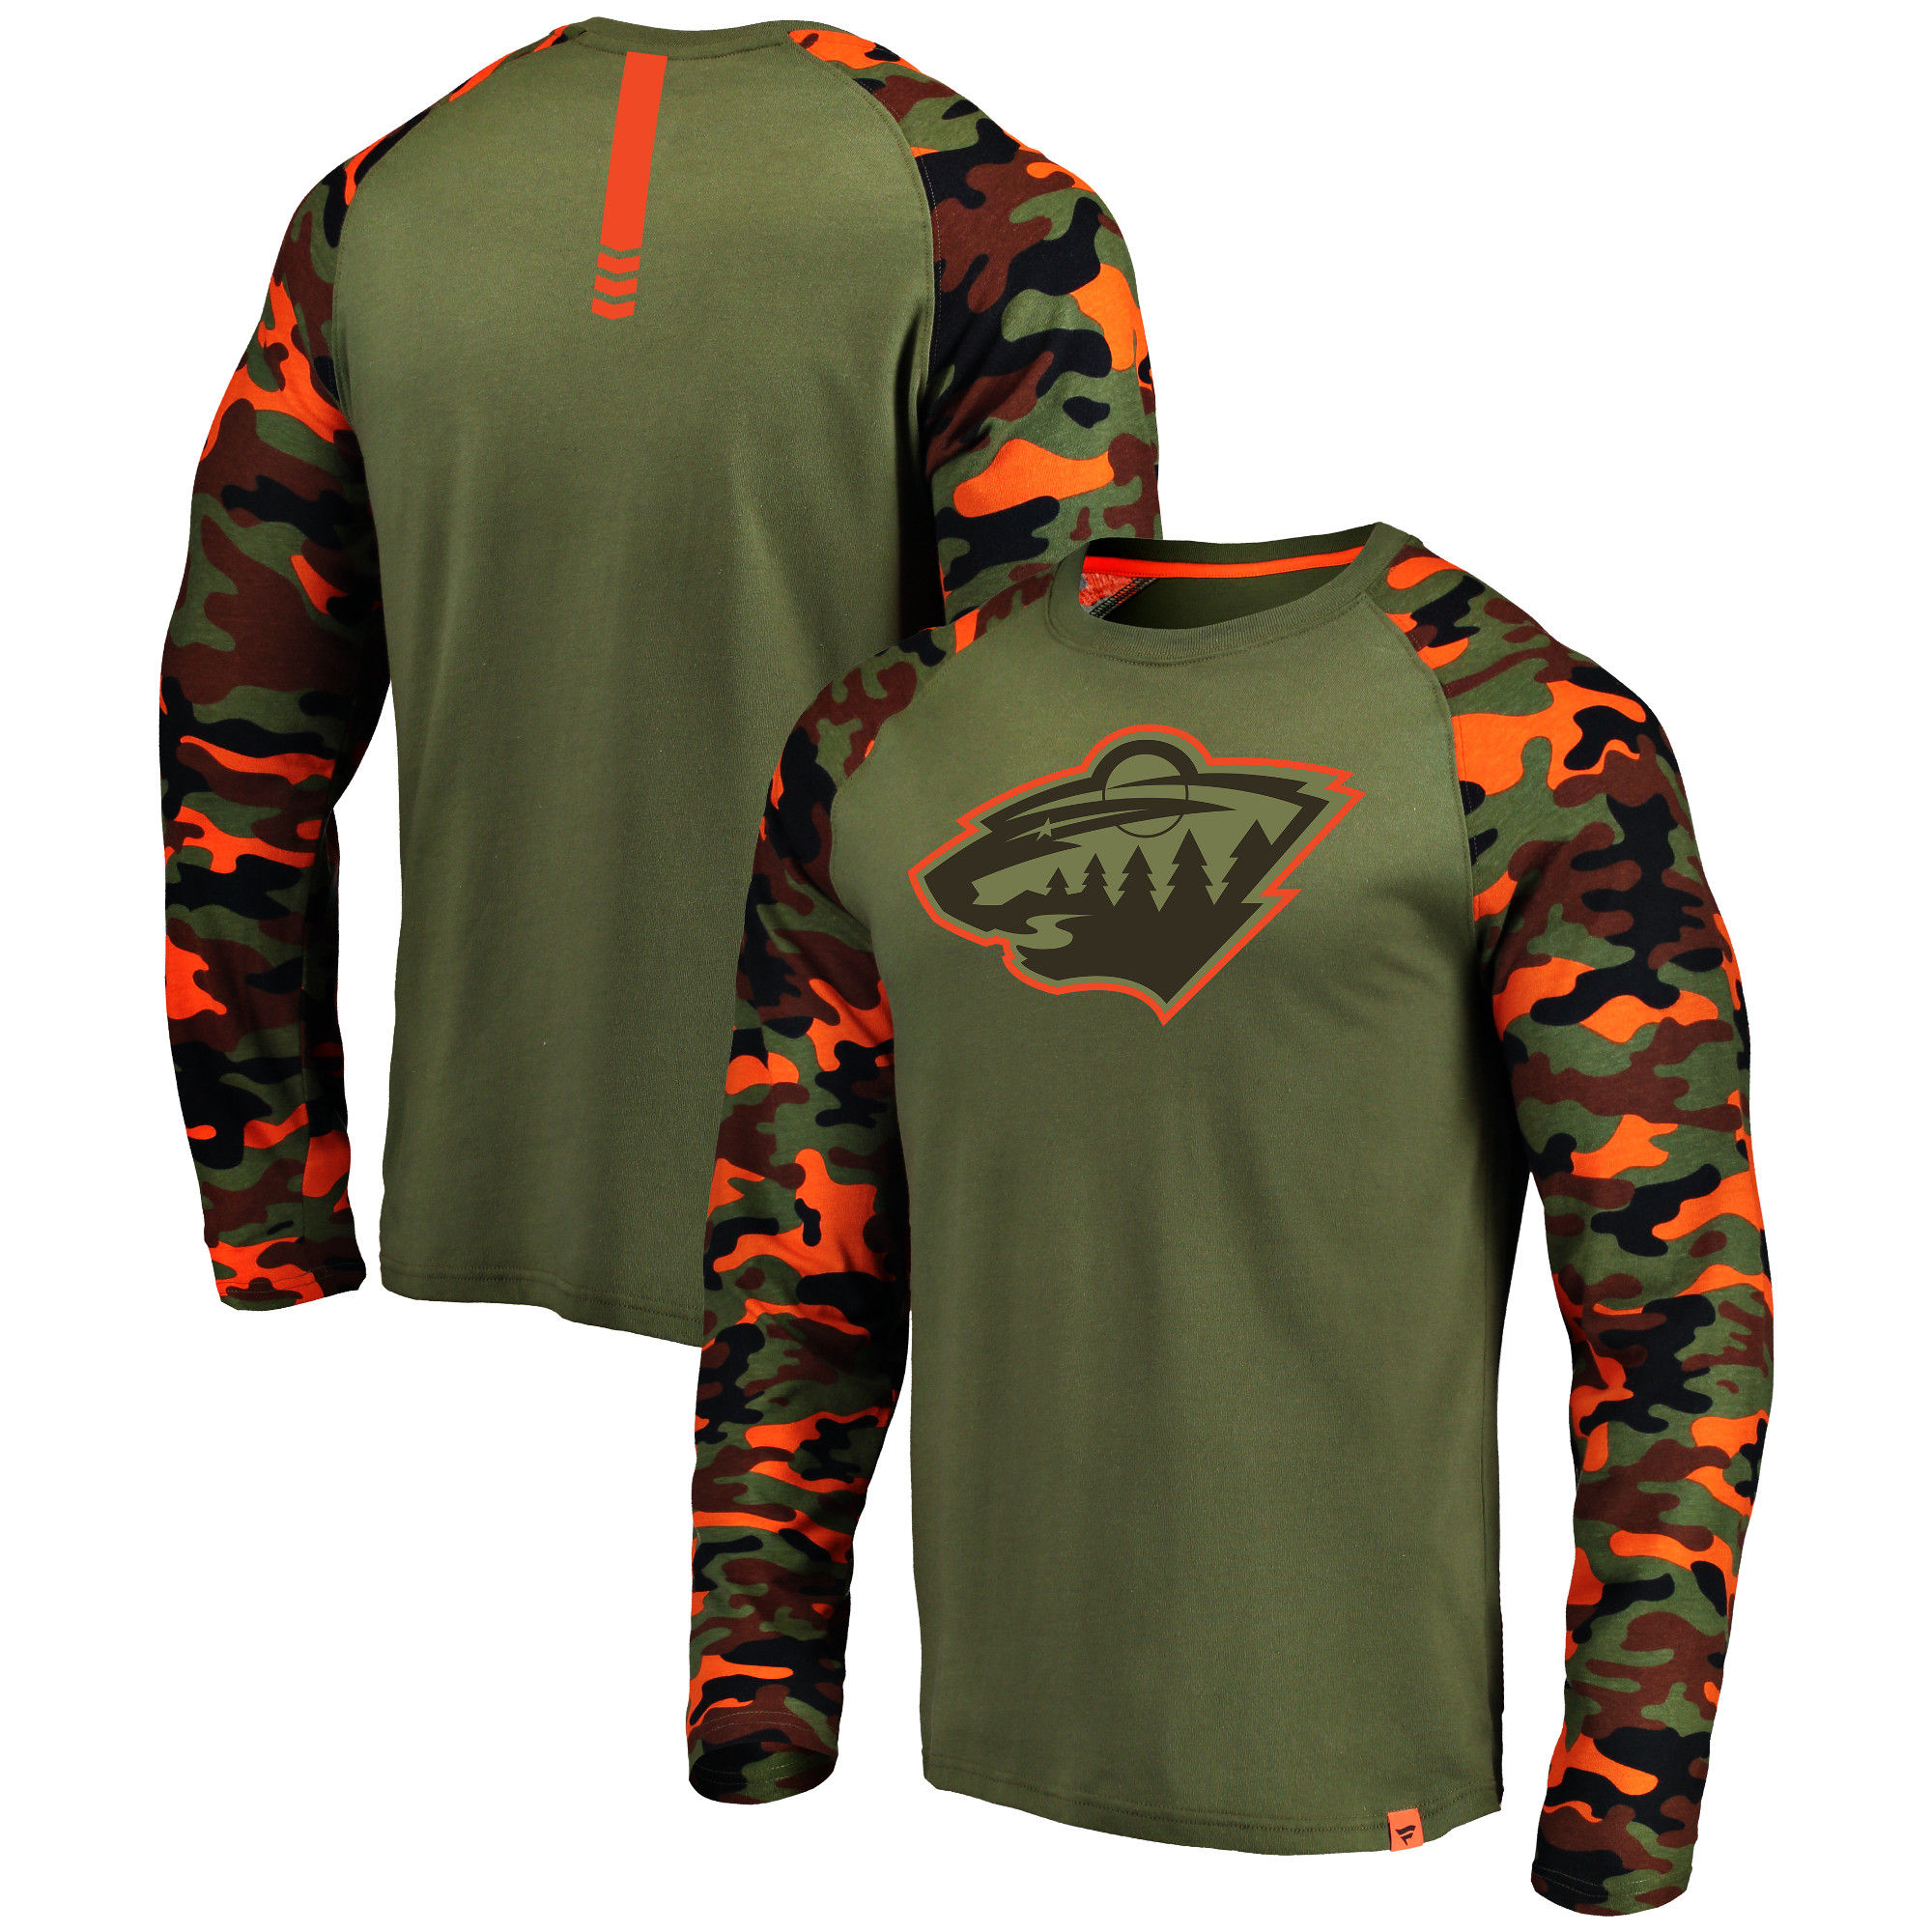 Minnesota Wild Fanatics Branded Olive/Camo Recon Long Sleeve Raglan T-Shirt